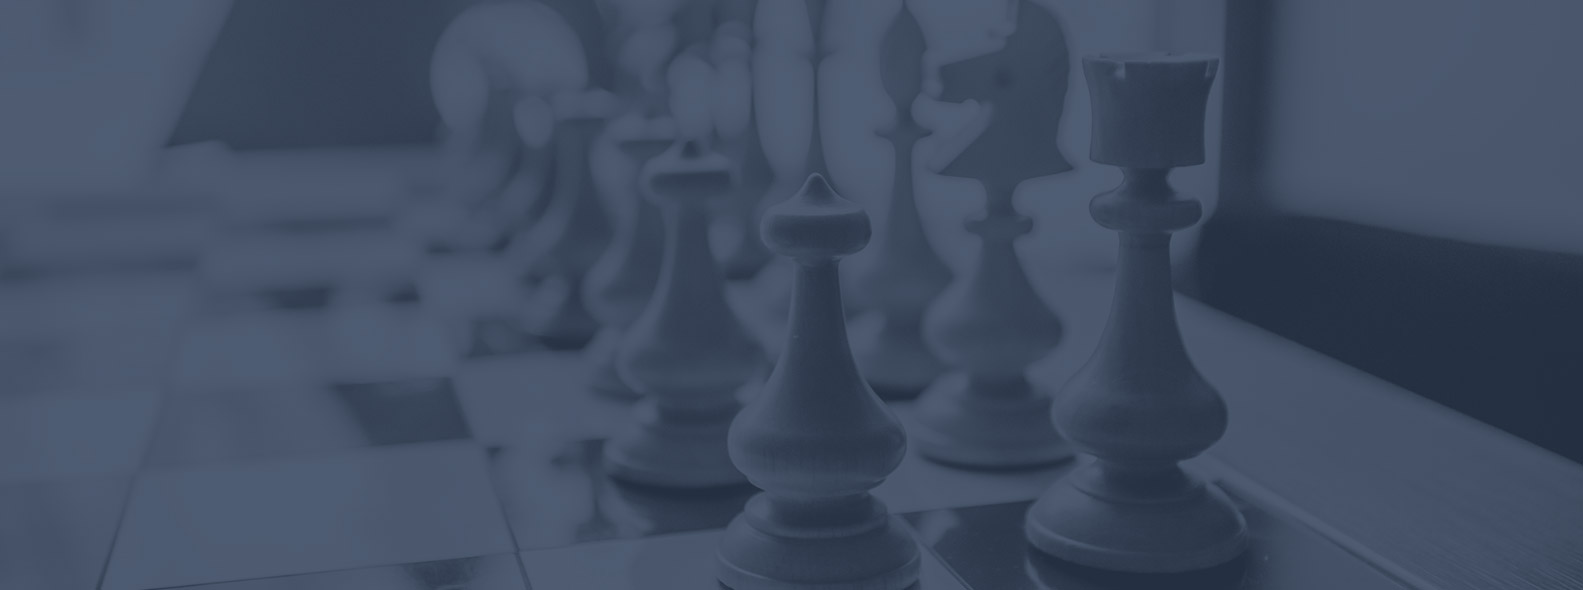 Chess pieces showing due diligence services are your next move for developing a business valuation